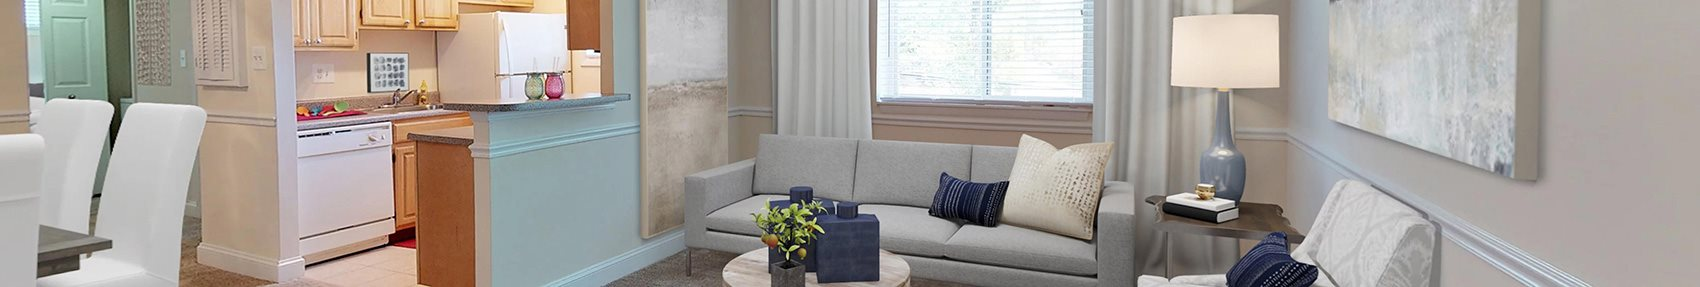 interior view banner image for bren mar apartments